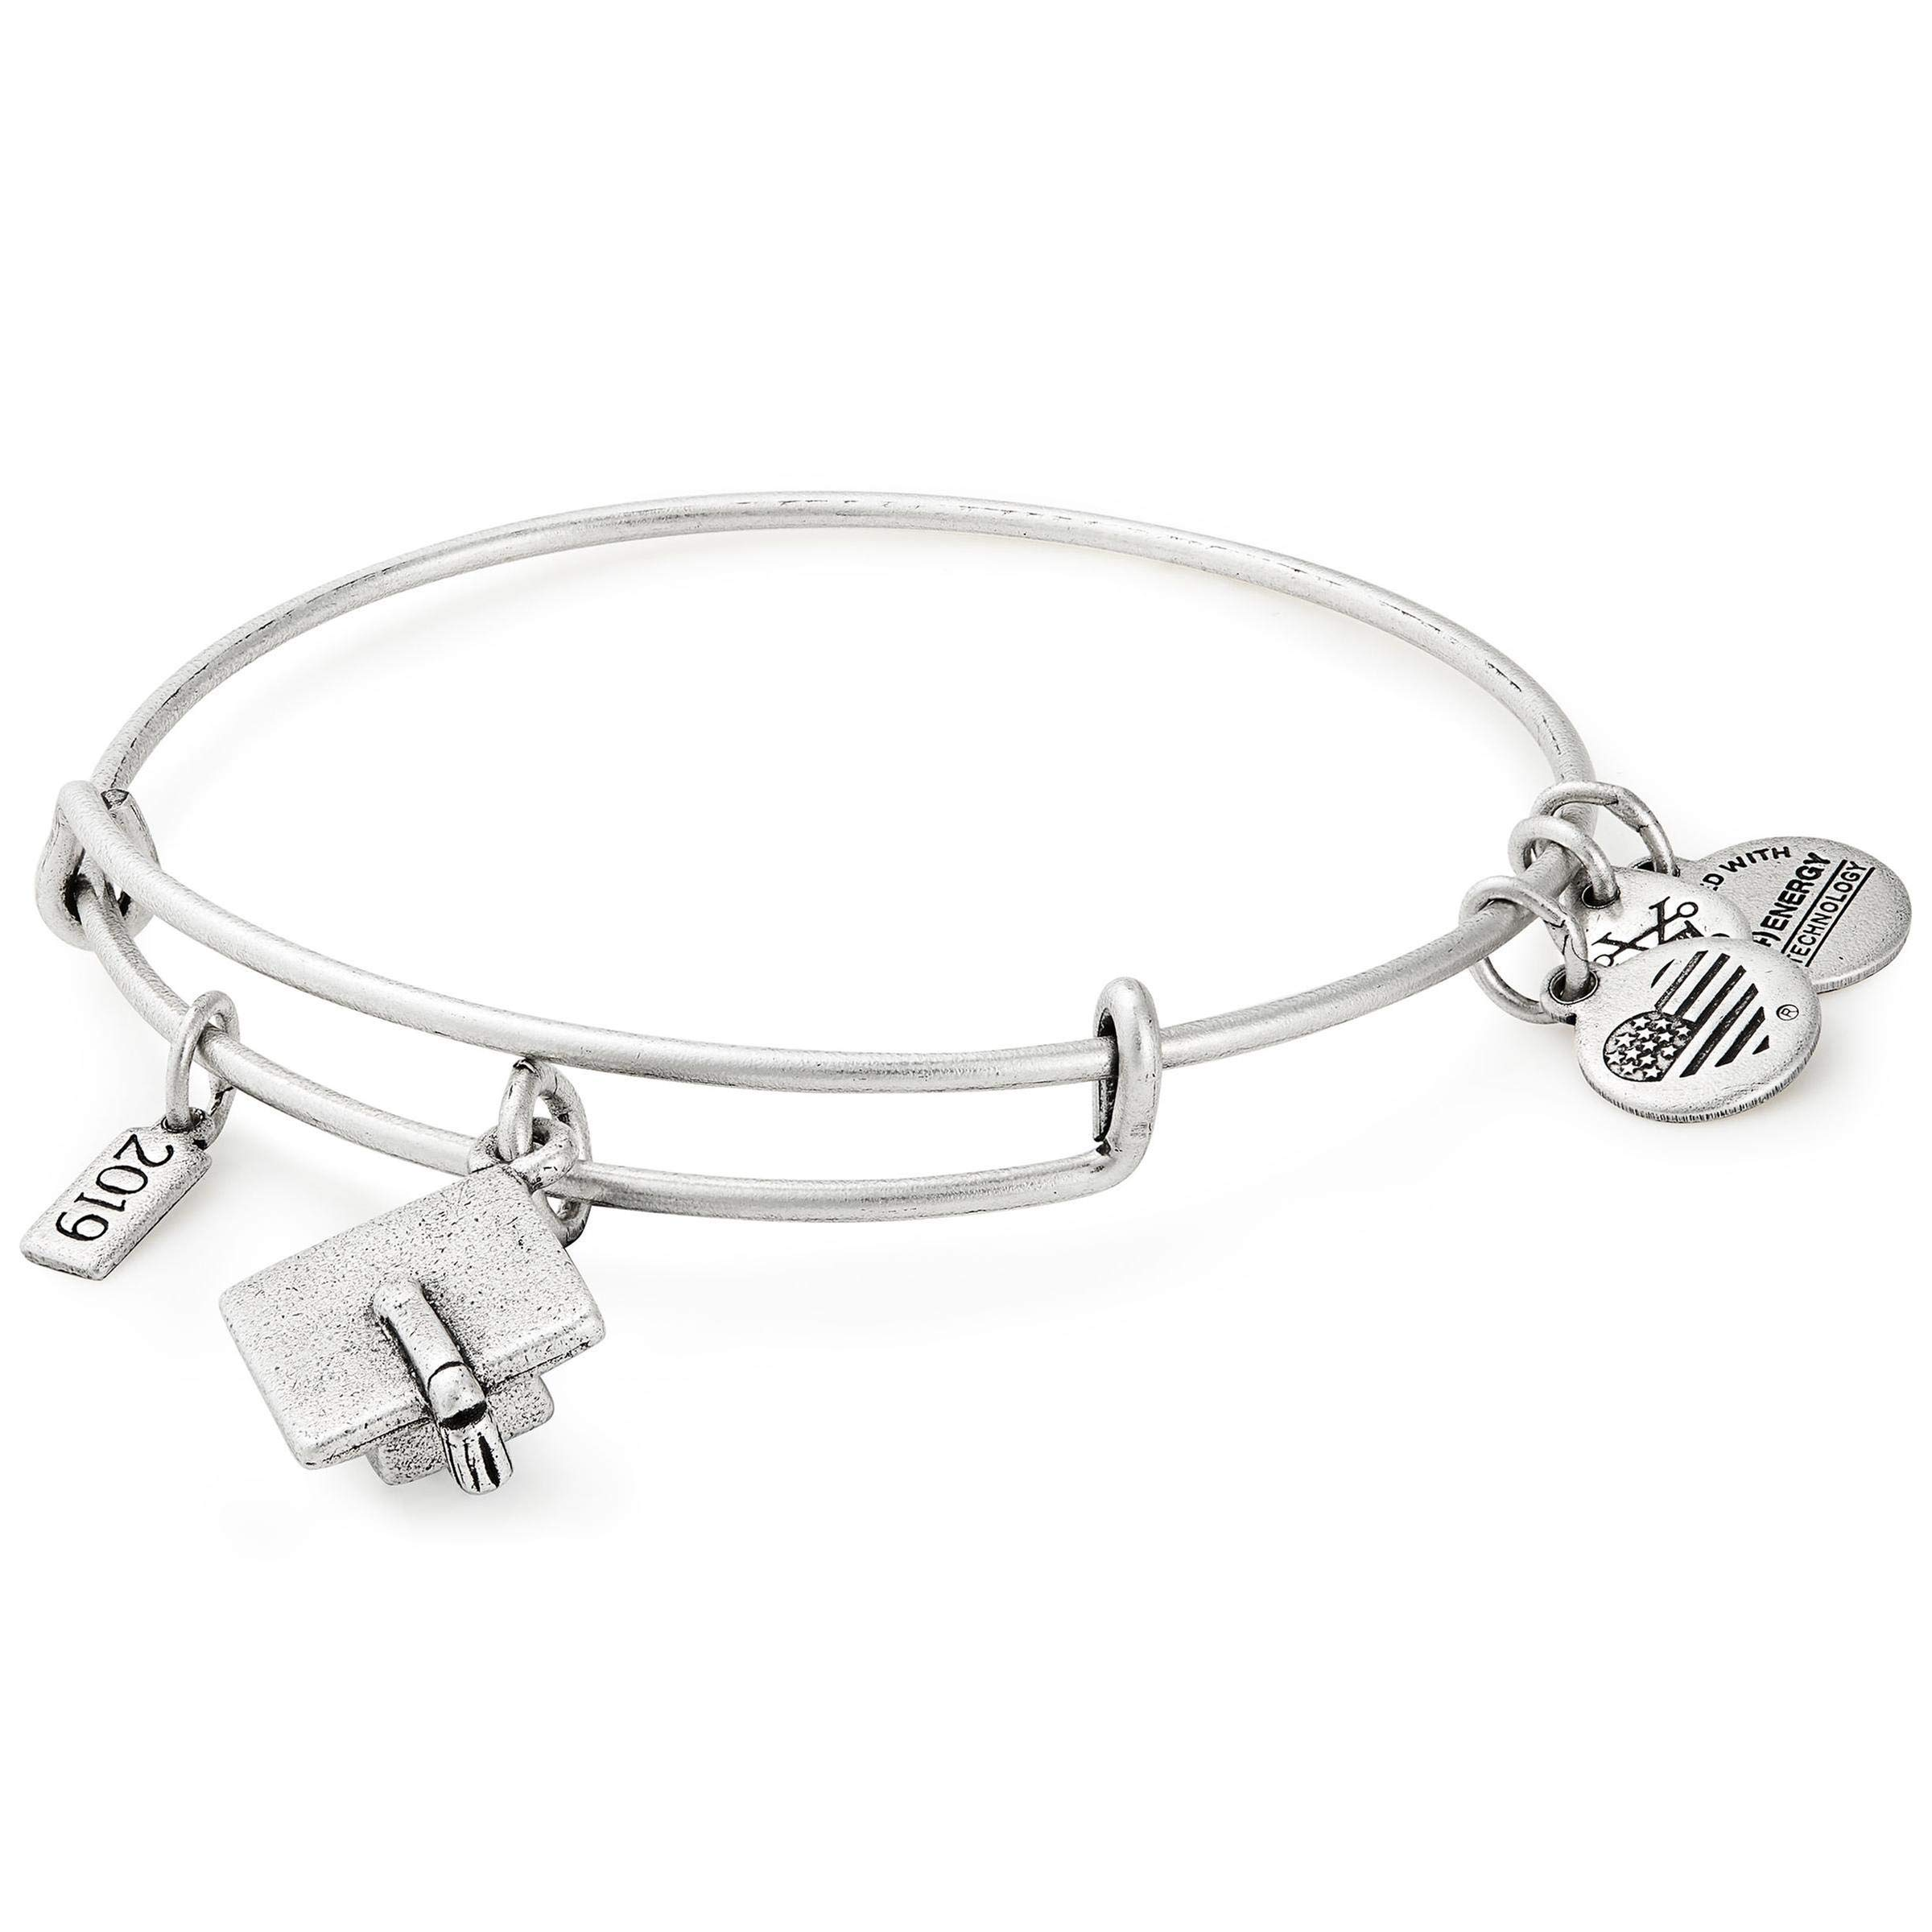 Alex and Ani Women's 2019 Grad Cap Charm Bangle, Silver, Expandable